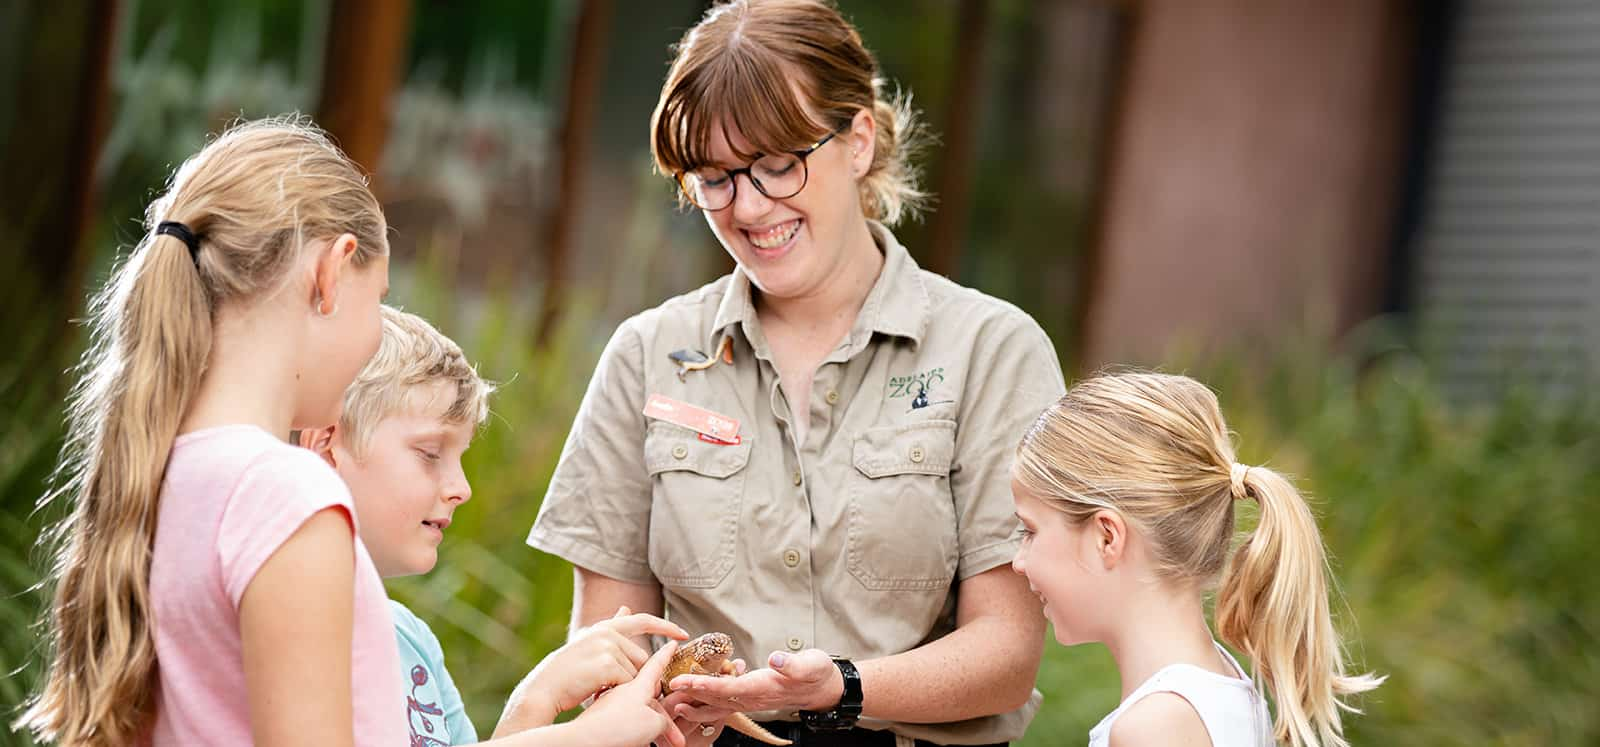 Kids smiling as Adelaide Zoo keeper holds lizard